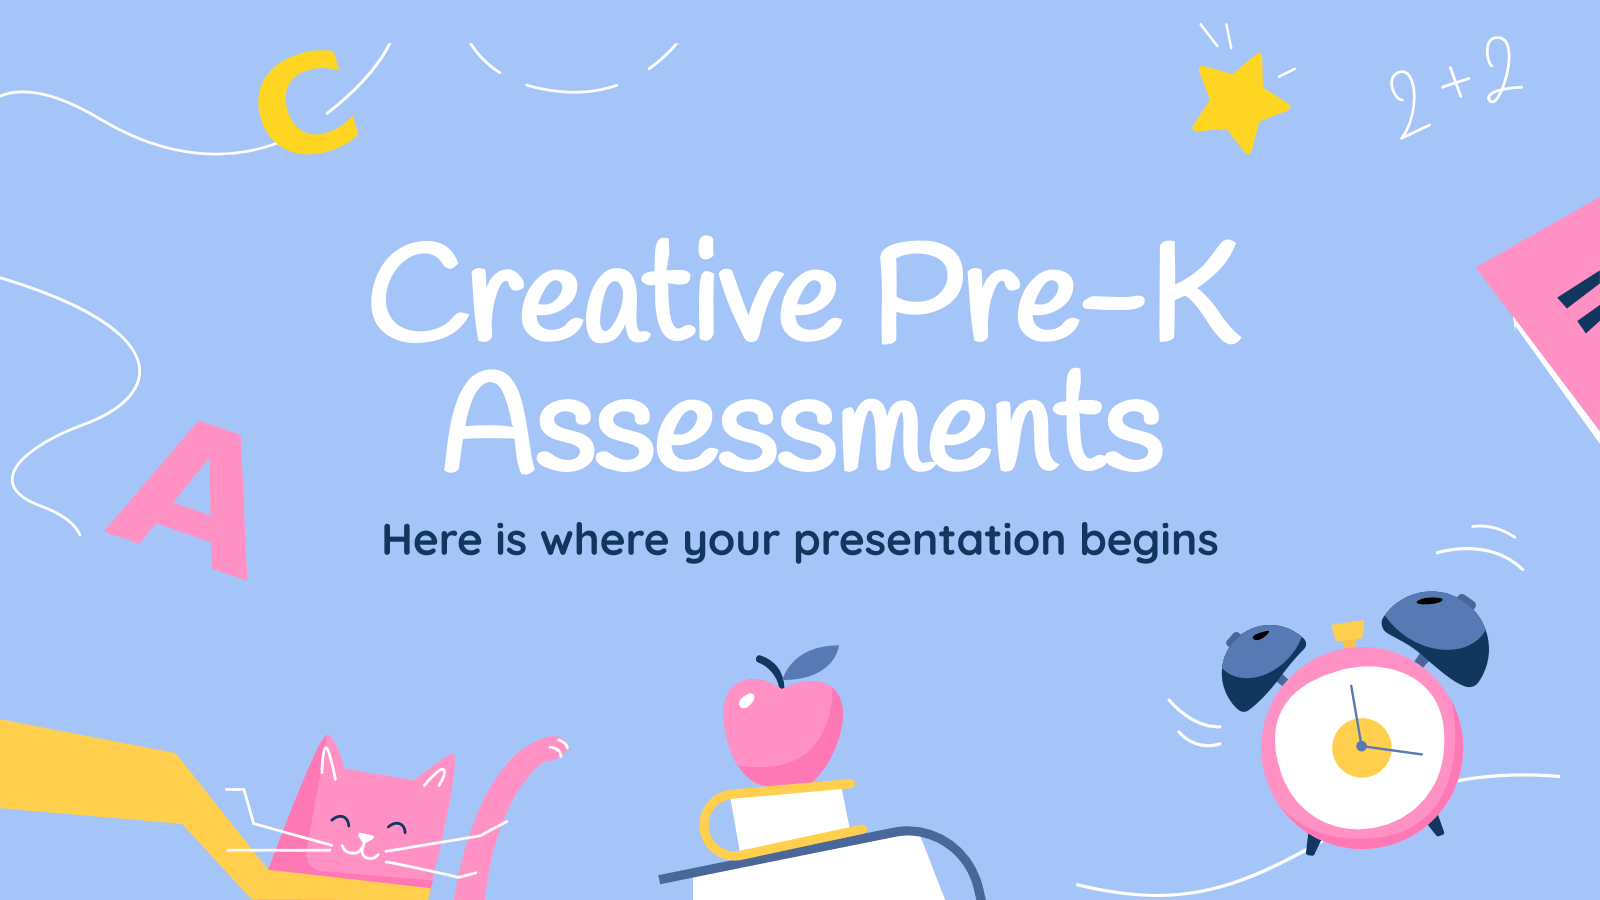 Creative Pre-K Assessments presentation template